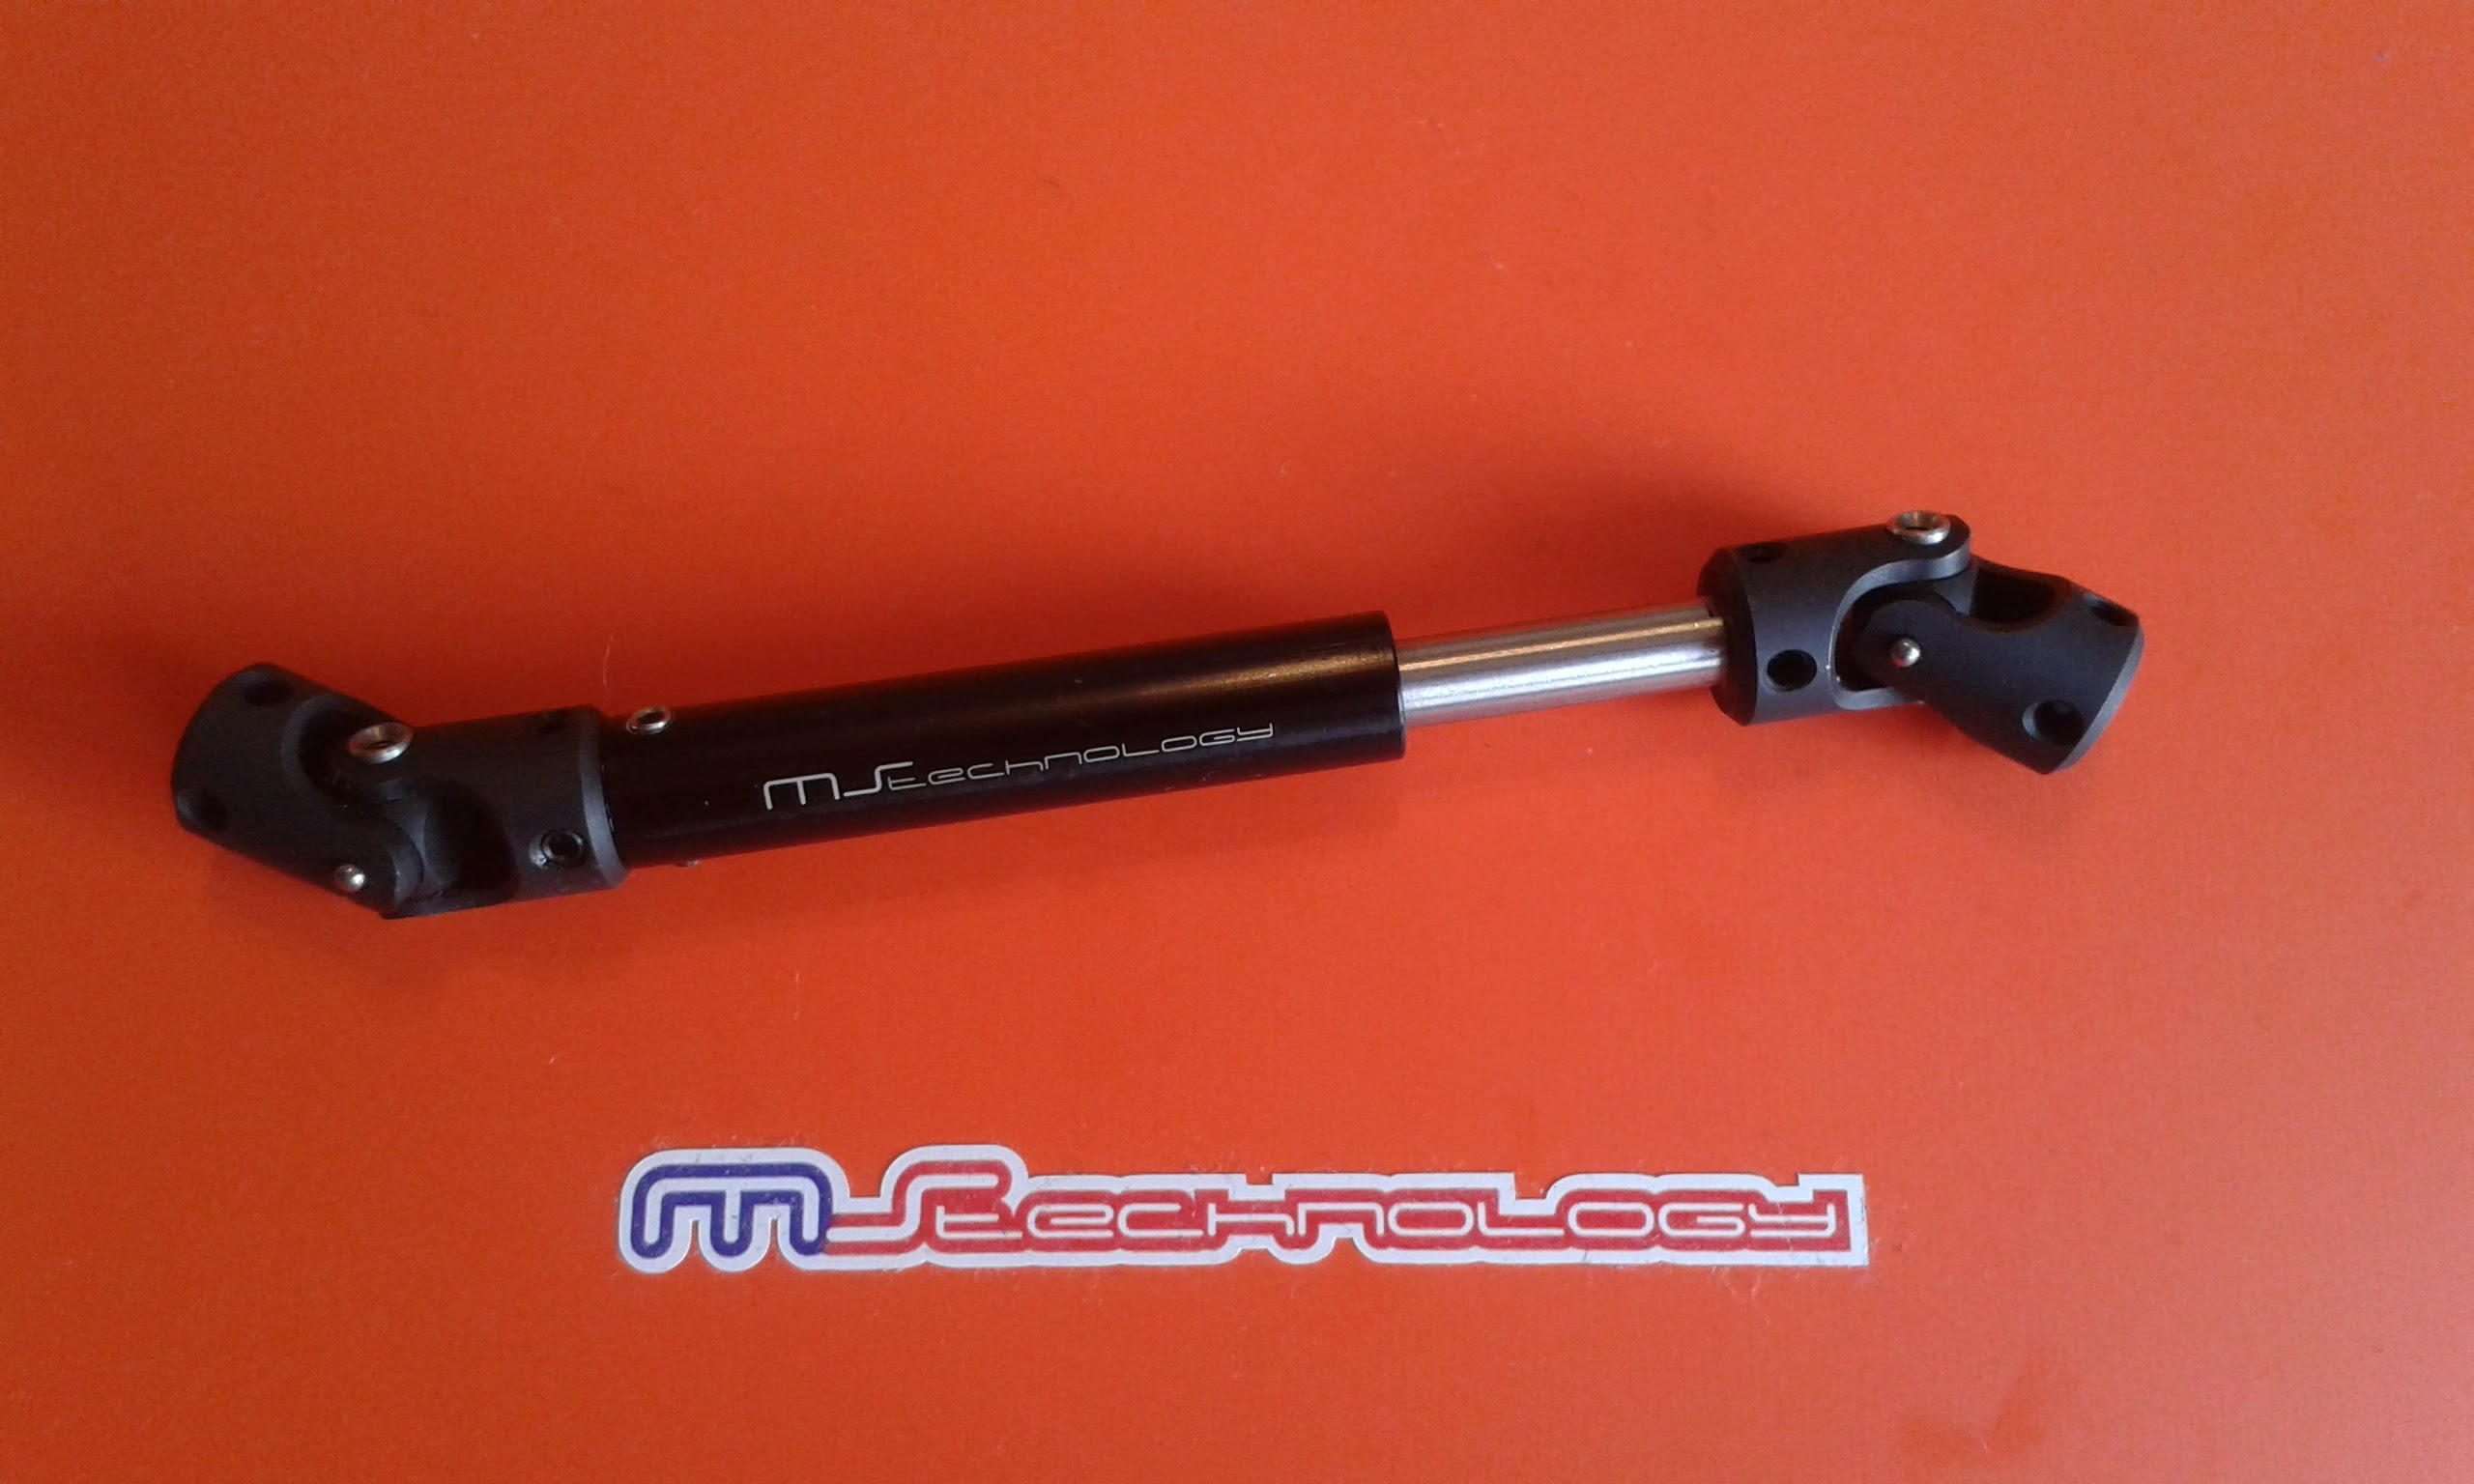 Kardan - Drive shaft D 12 ST L135/160mm